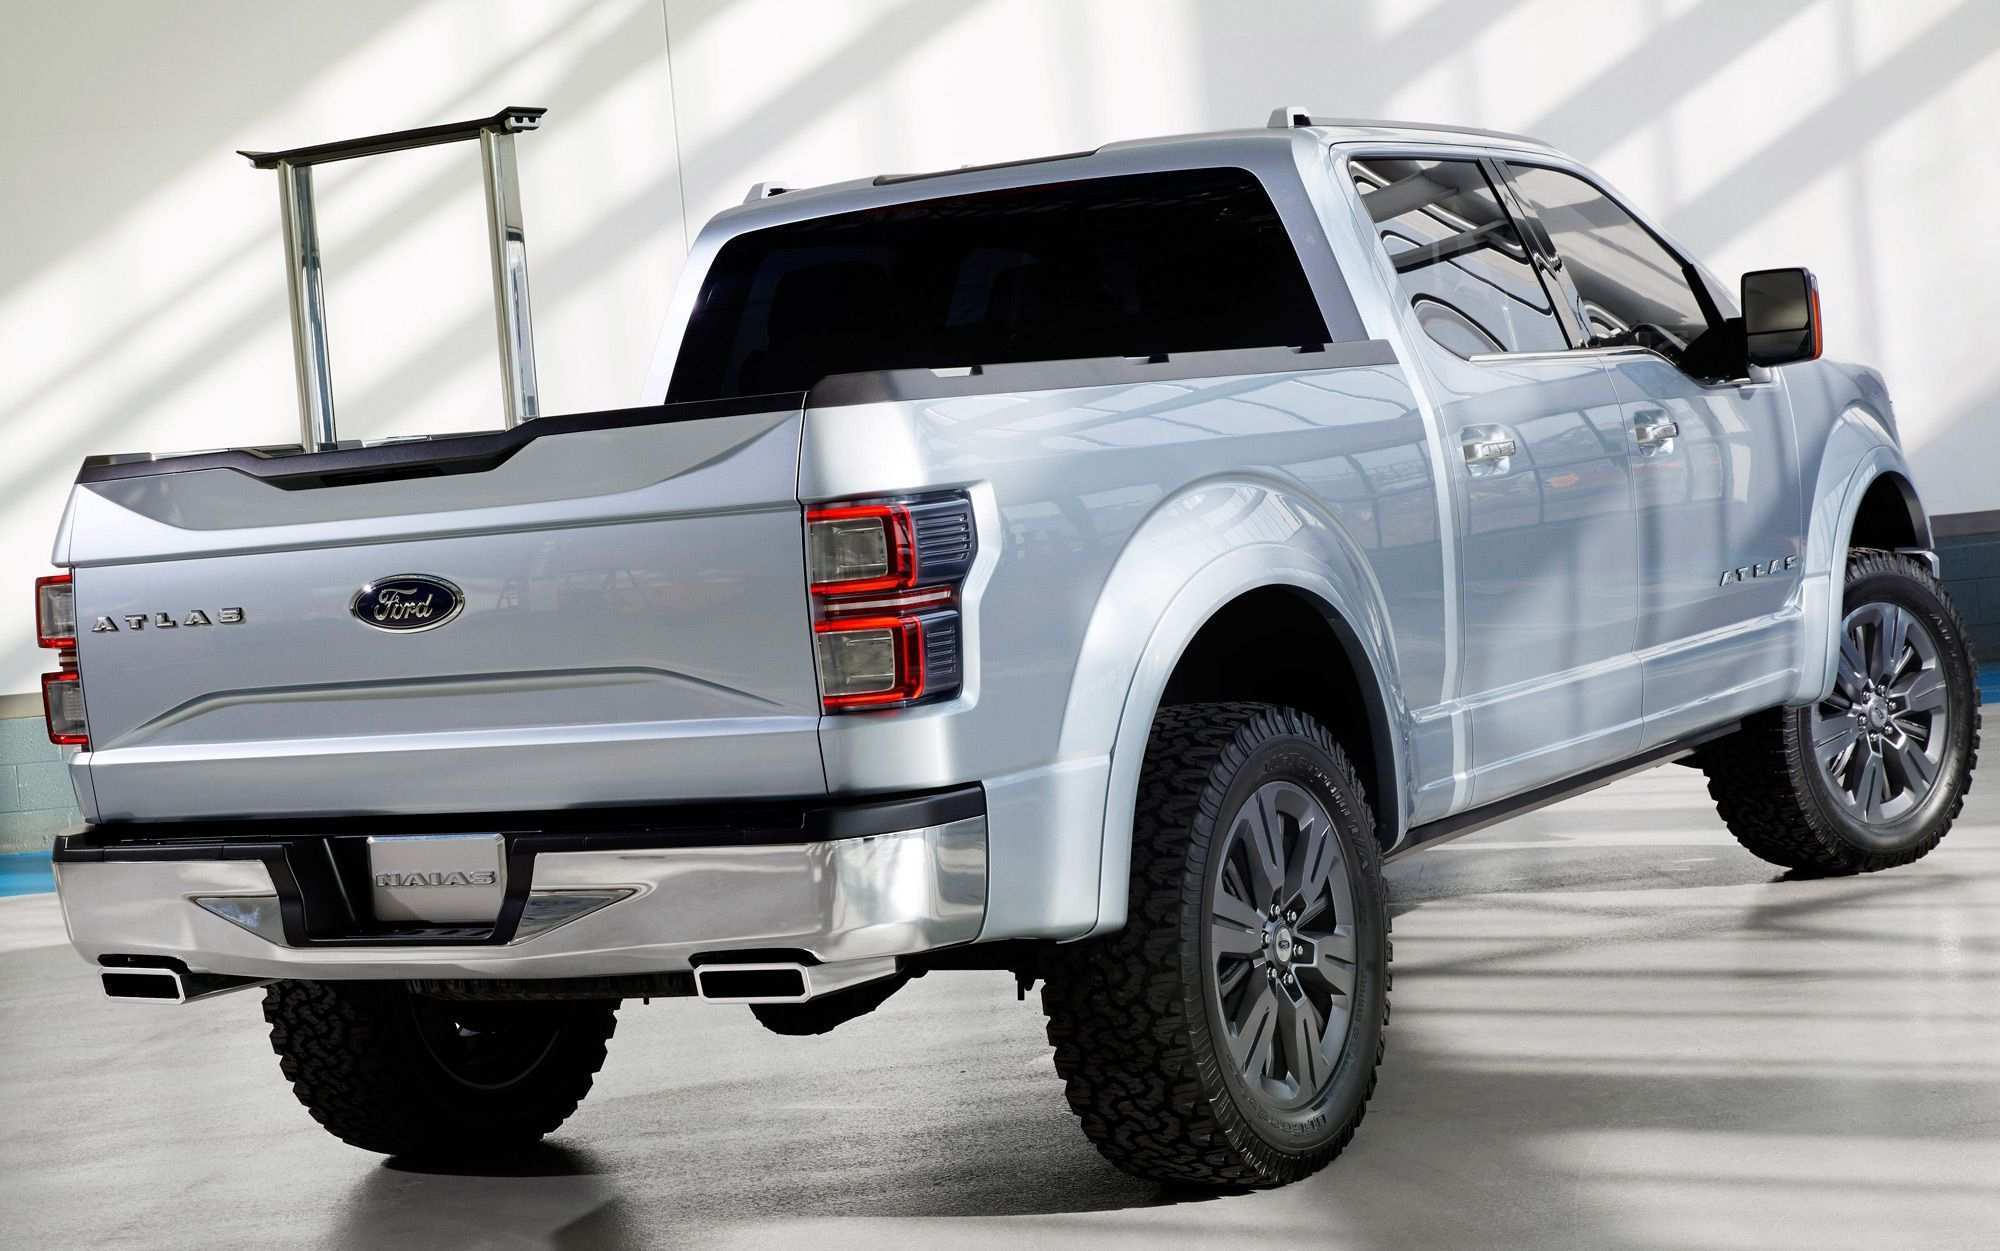 63 New 2020 Ford Atlas Configurations with 2020 Ford Atlas